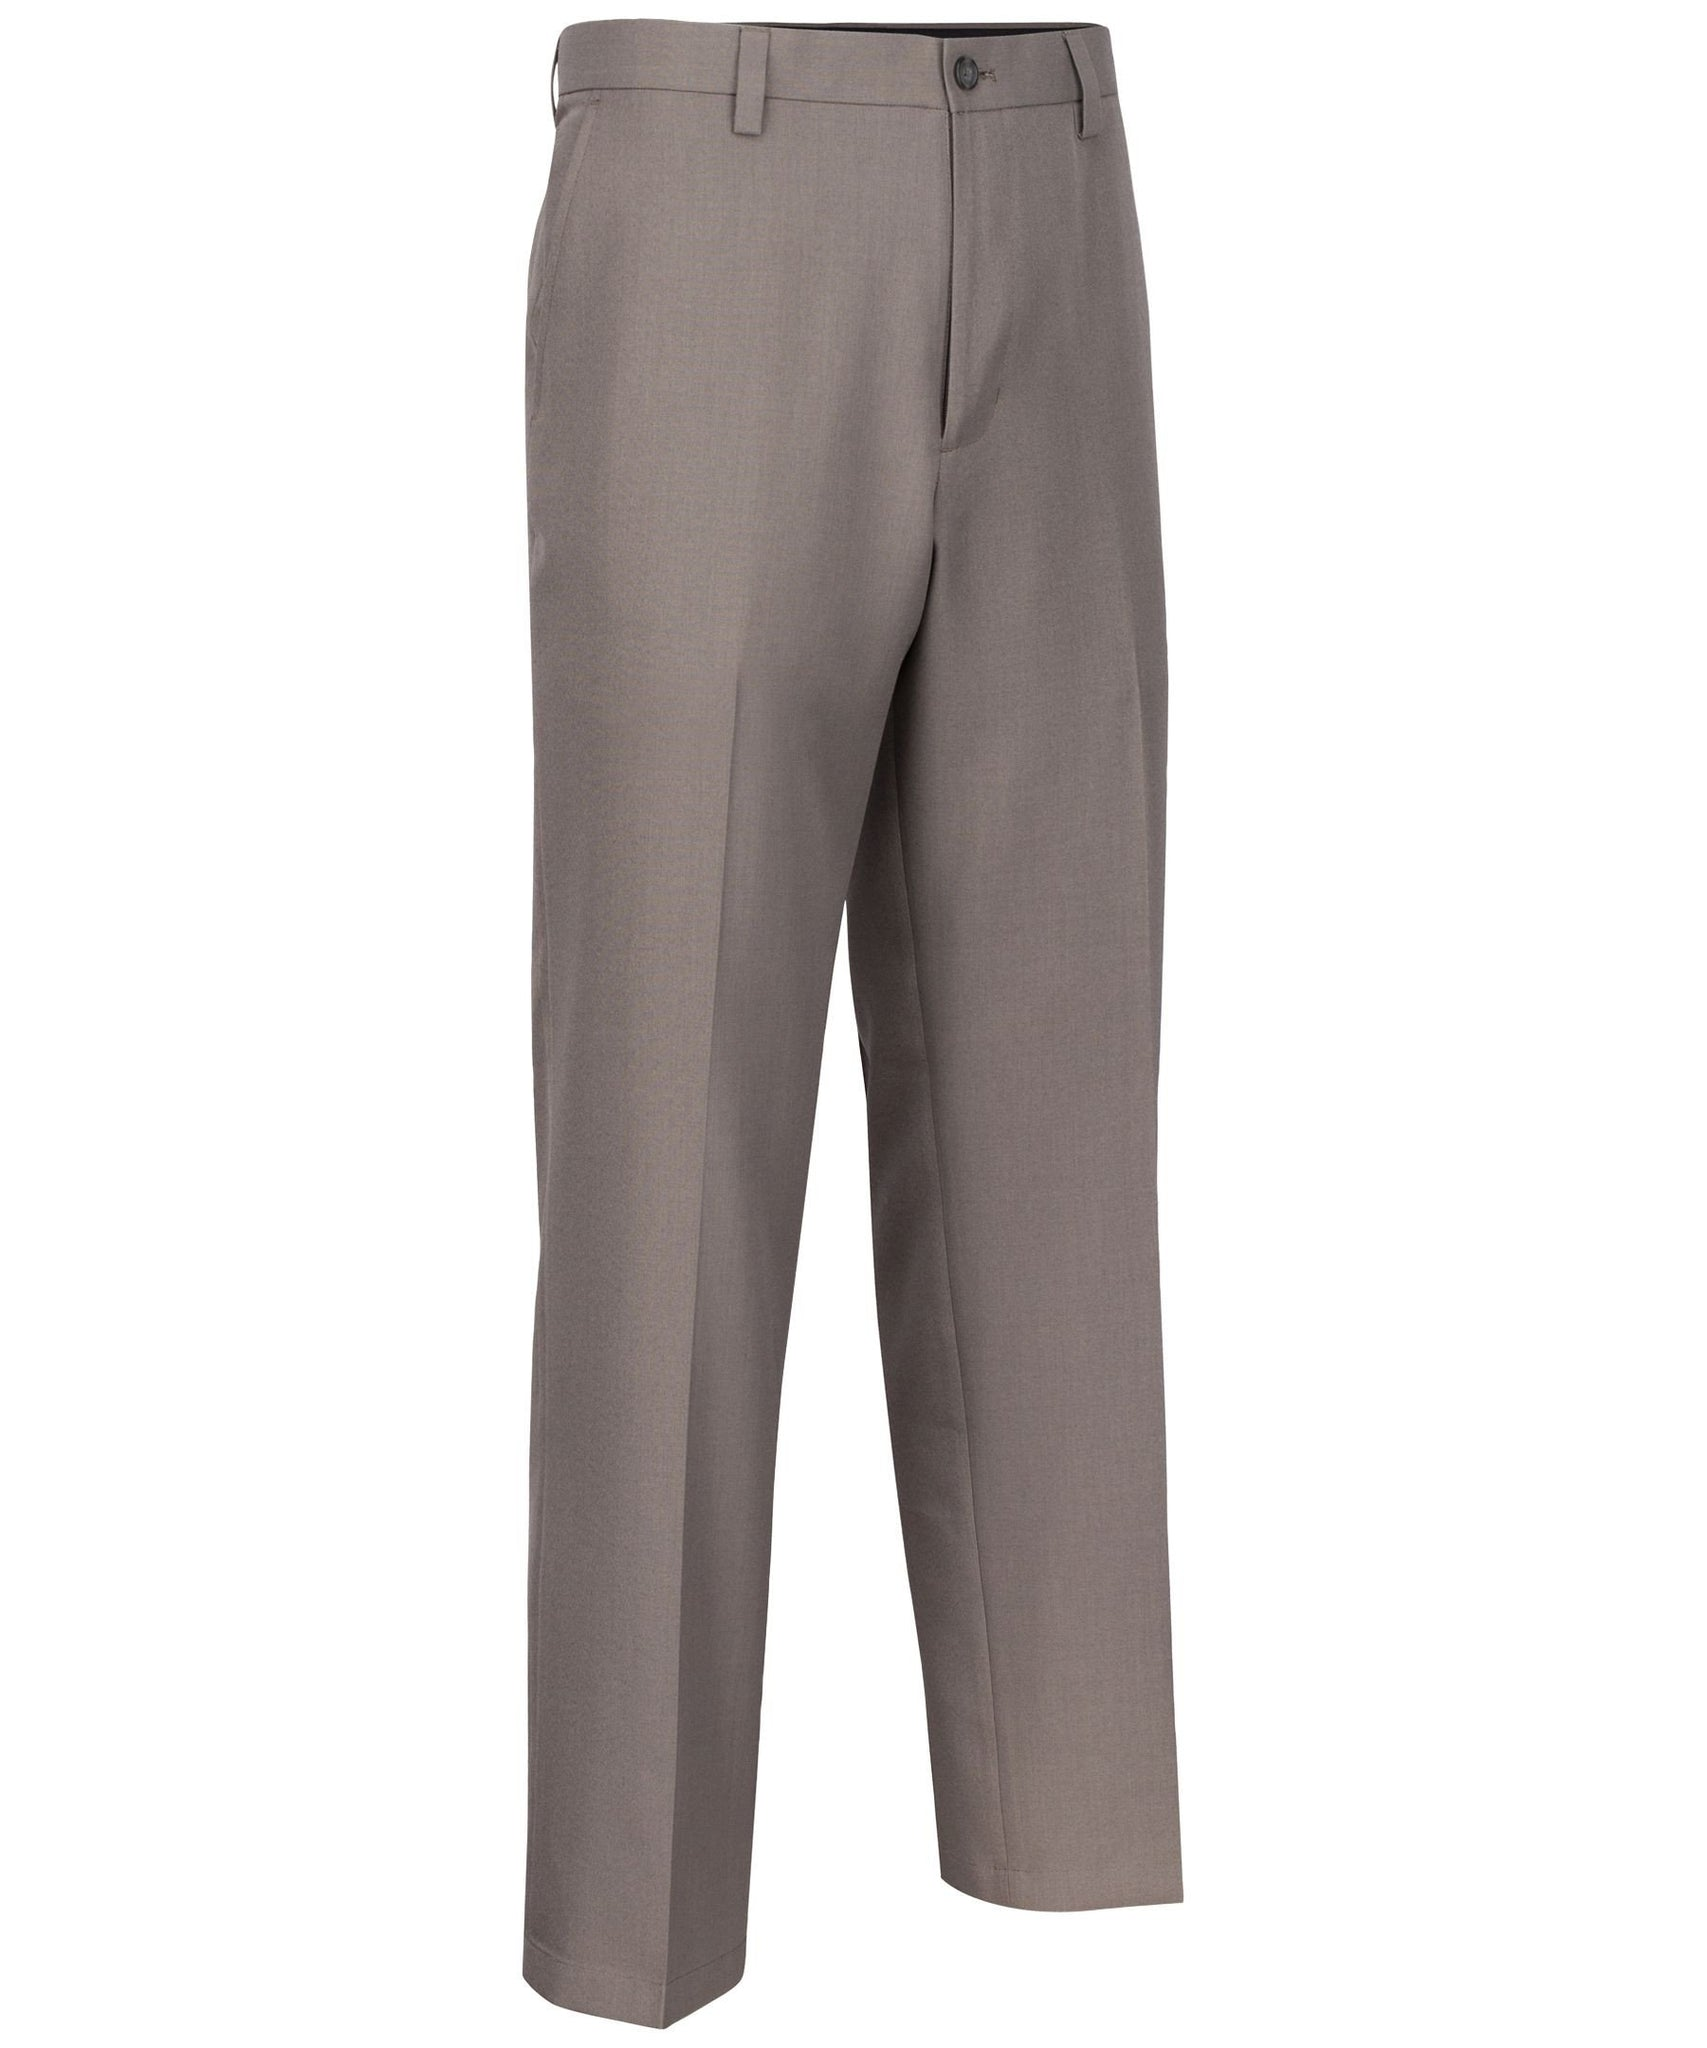 Greg Norman for Tasso Elba Lodge-Wood Flat-Front 32x30 Golf Pant